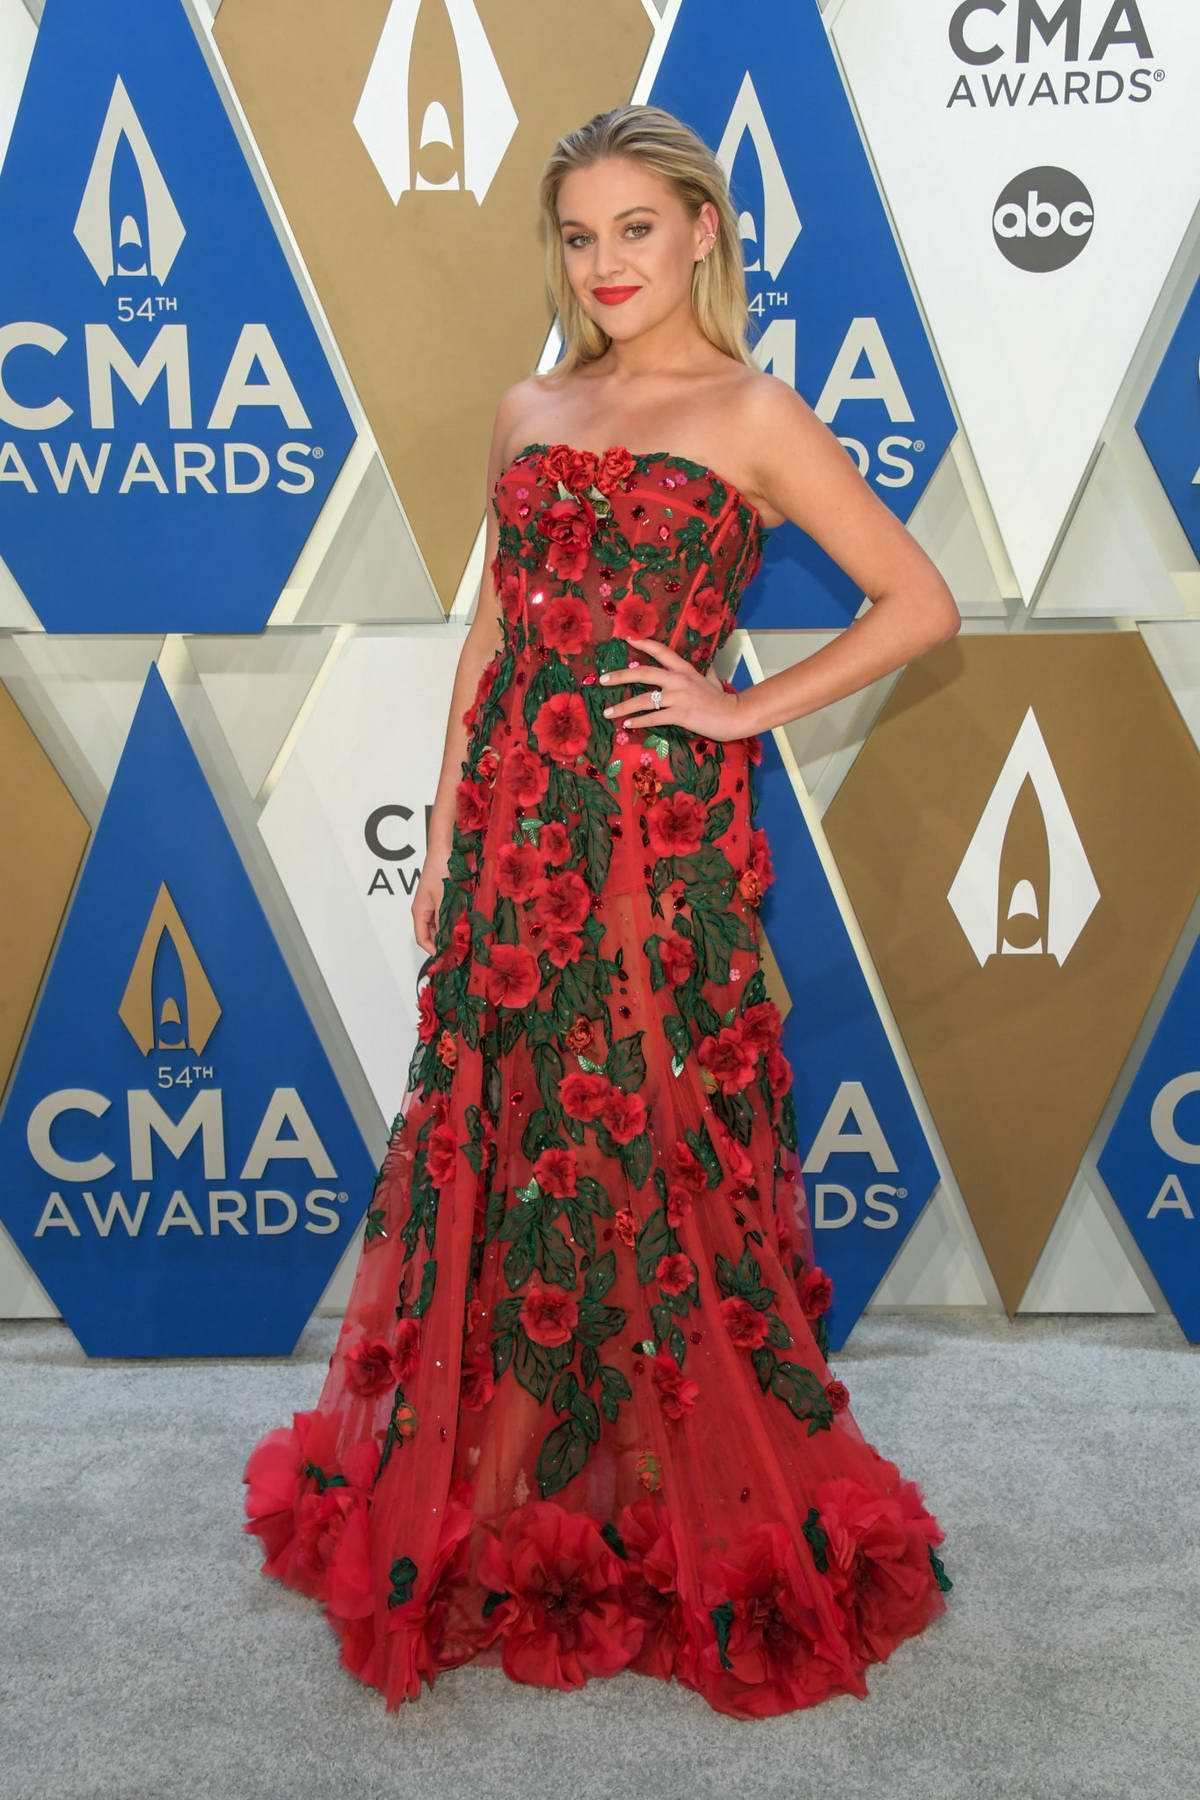 Kelsea Ballerini attends the 54th annual CMA Awards at the Music City Center in Nashville, Tennessee